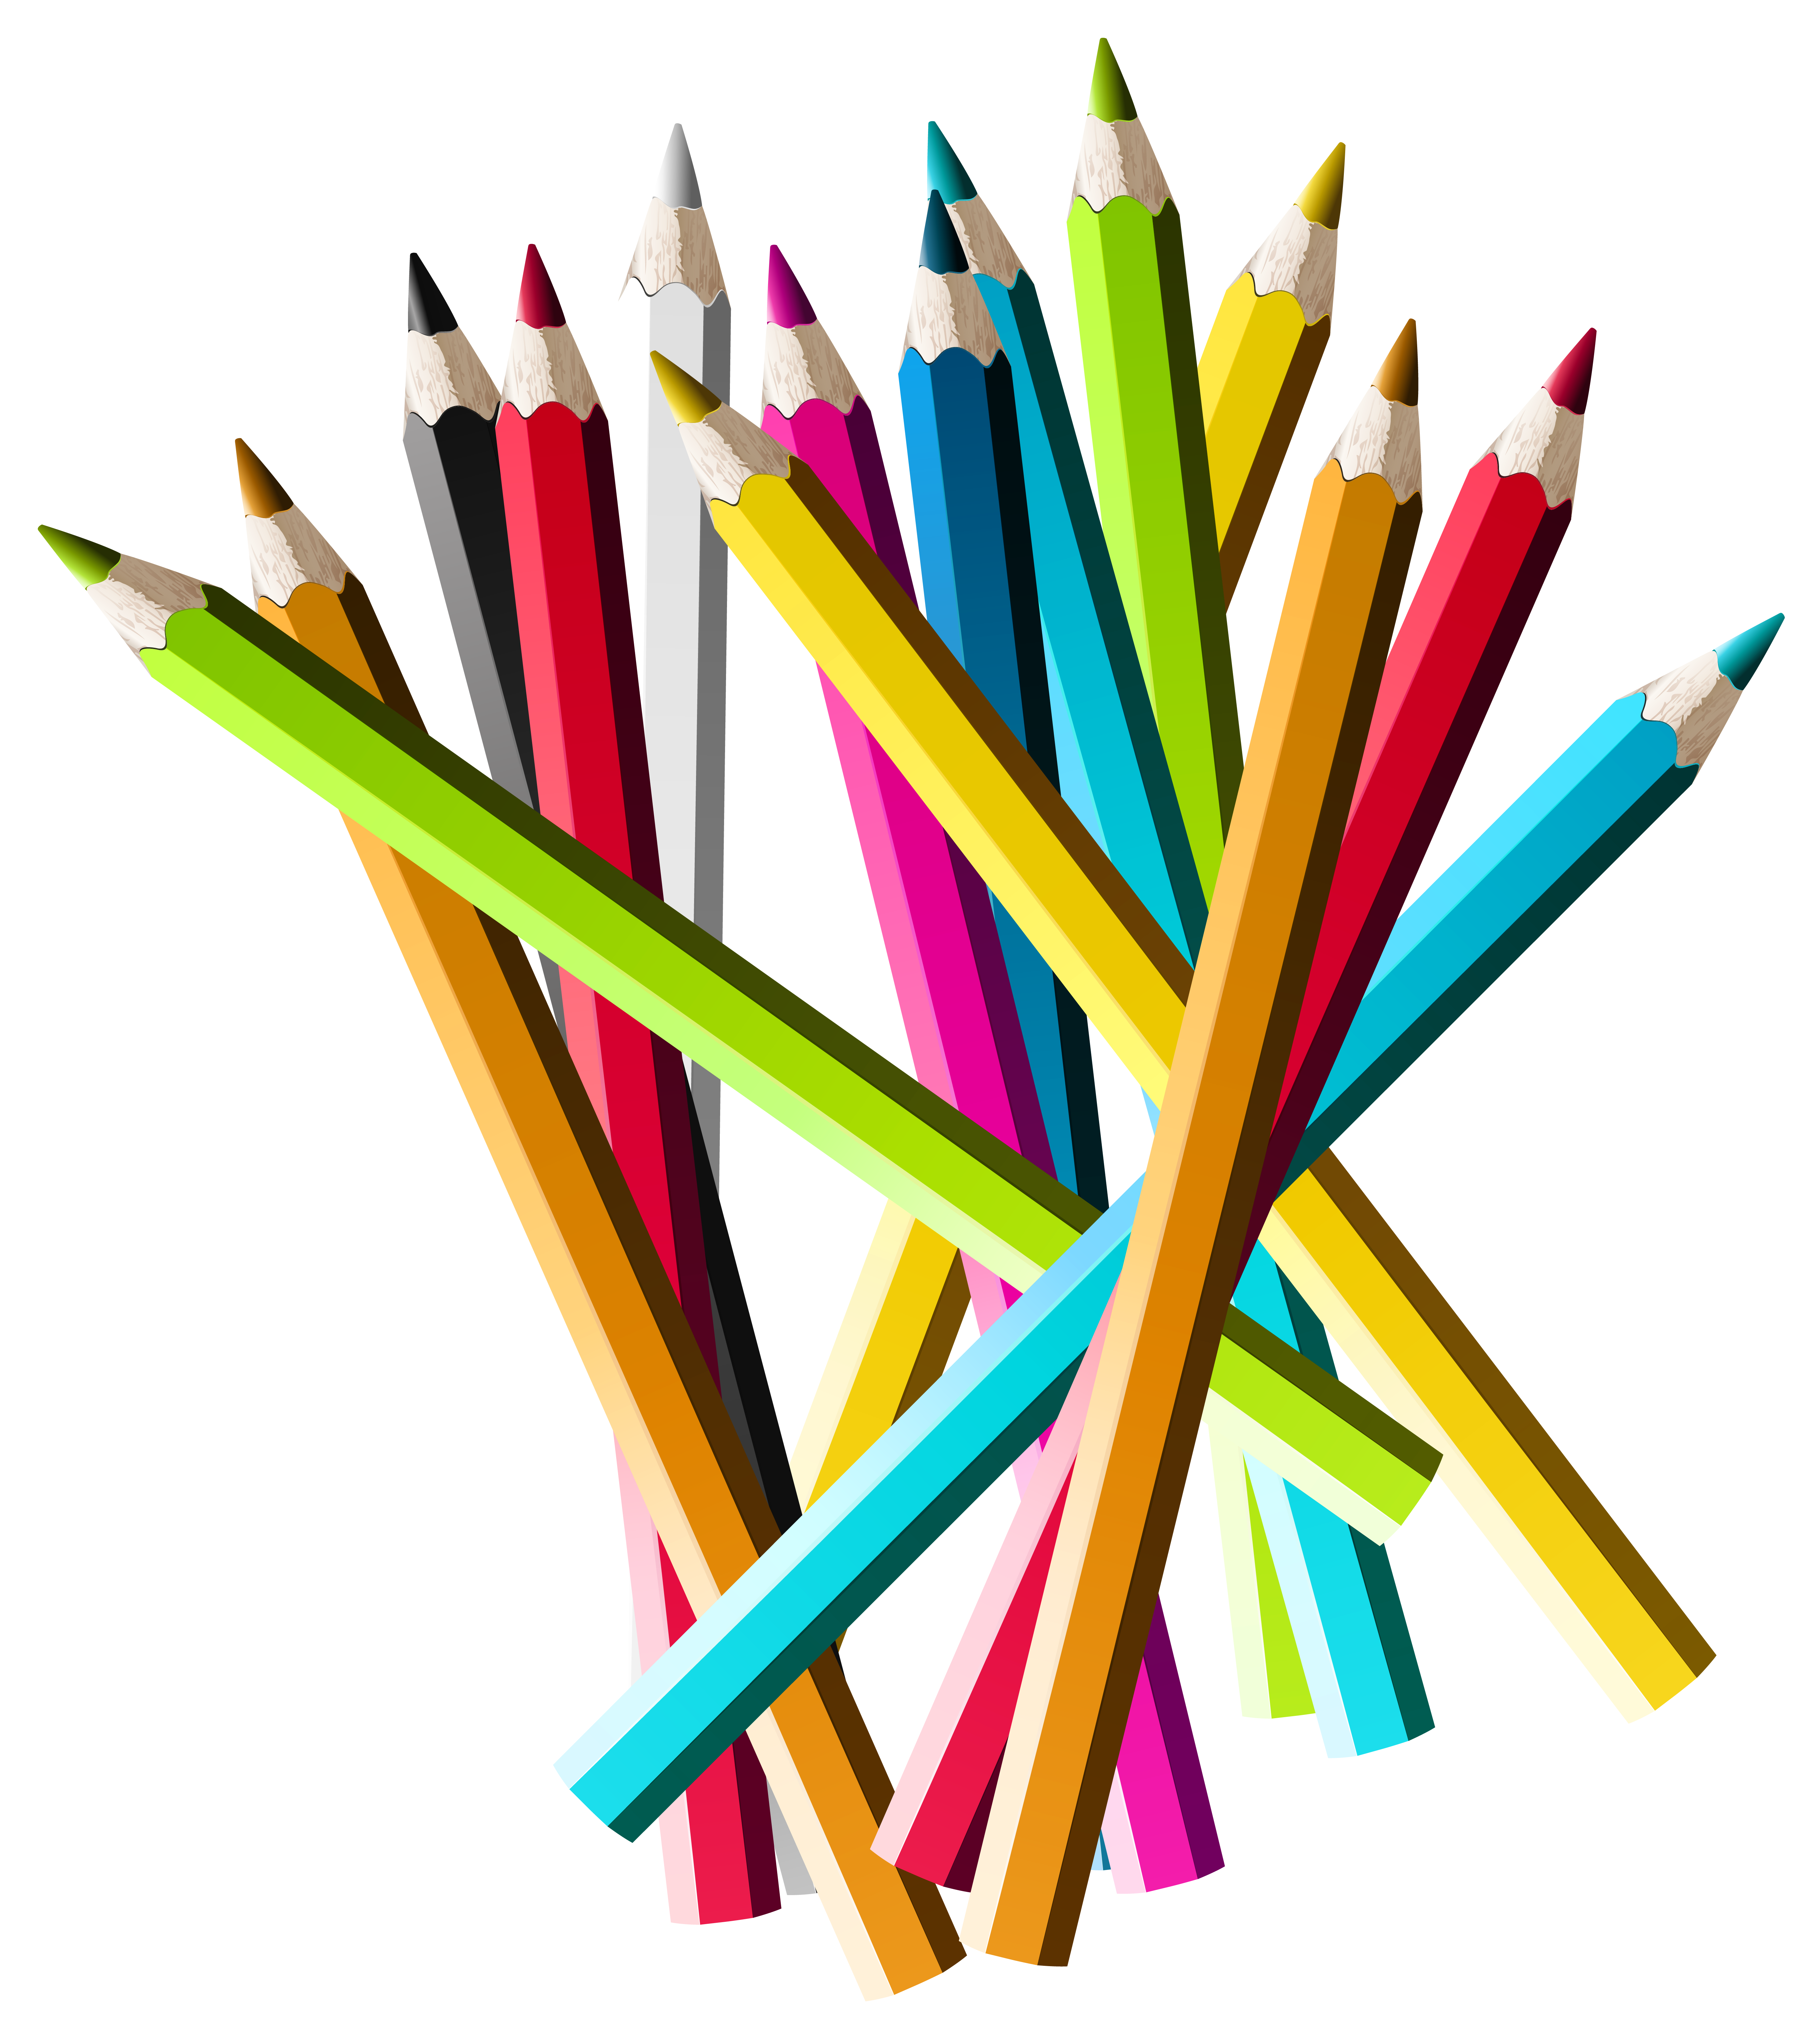 School pencil clipart vector library stock Colorful Pencils PNG Clipart Picture | Gallery Yopriceville - High ... vector library stock